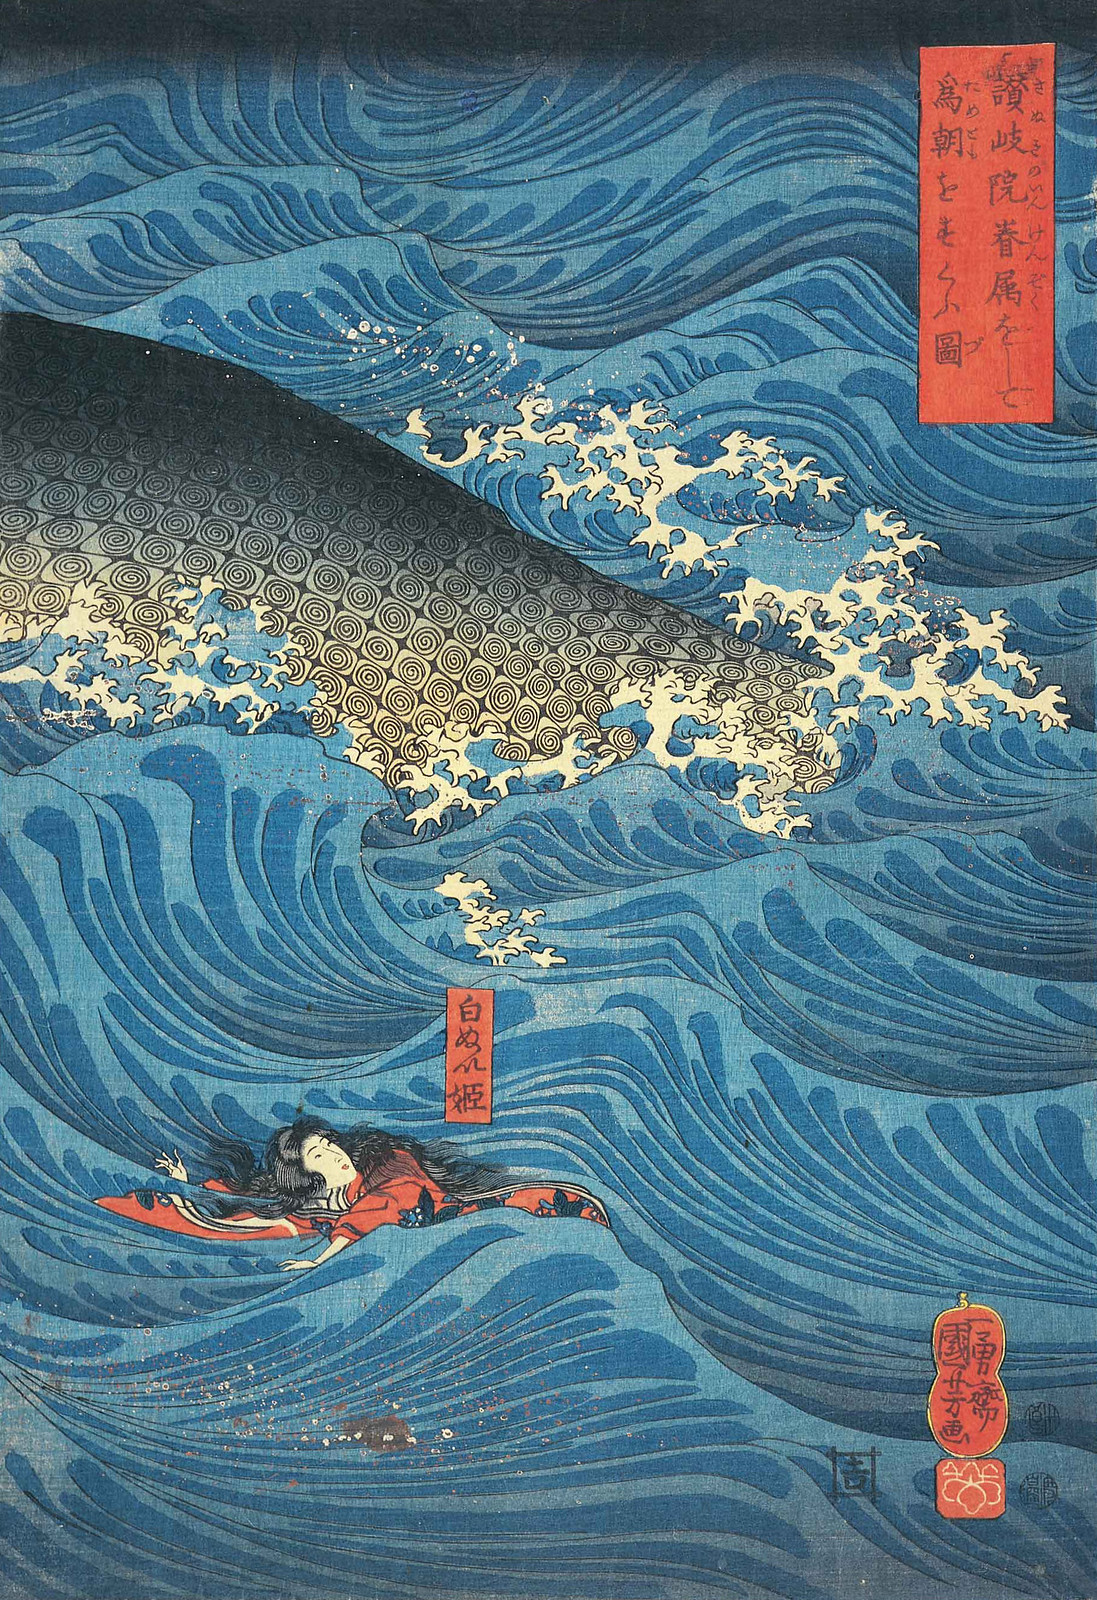 Utagawa Kuniyoshi - Retired Emperor Sanuki Sends Allies to Rescue Tametomo, Edo Period (right panel)